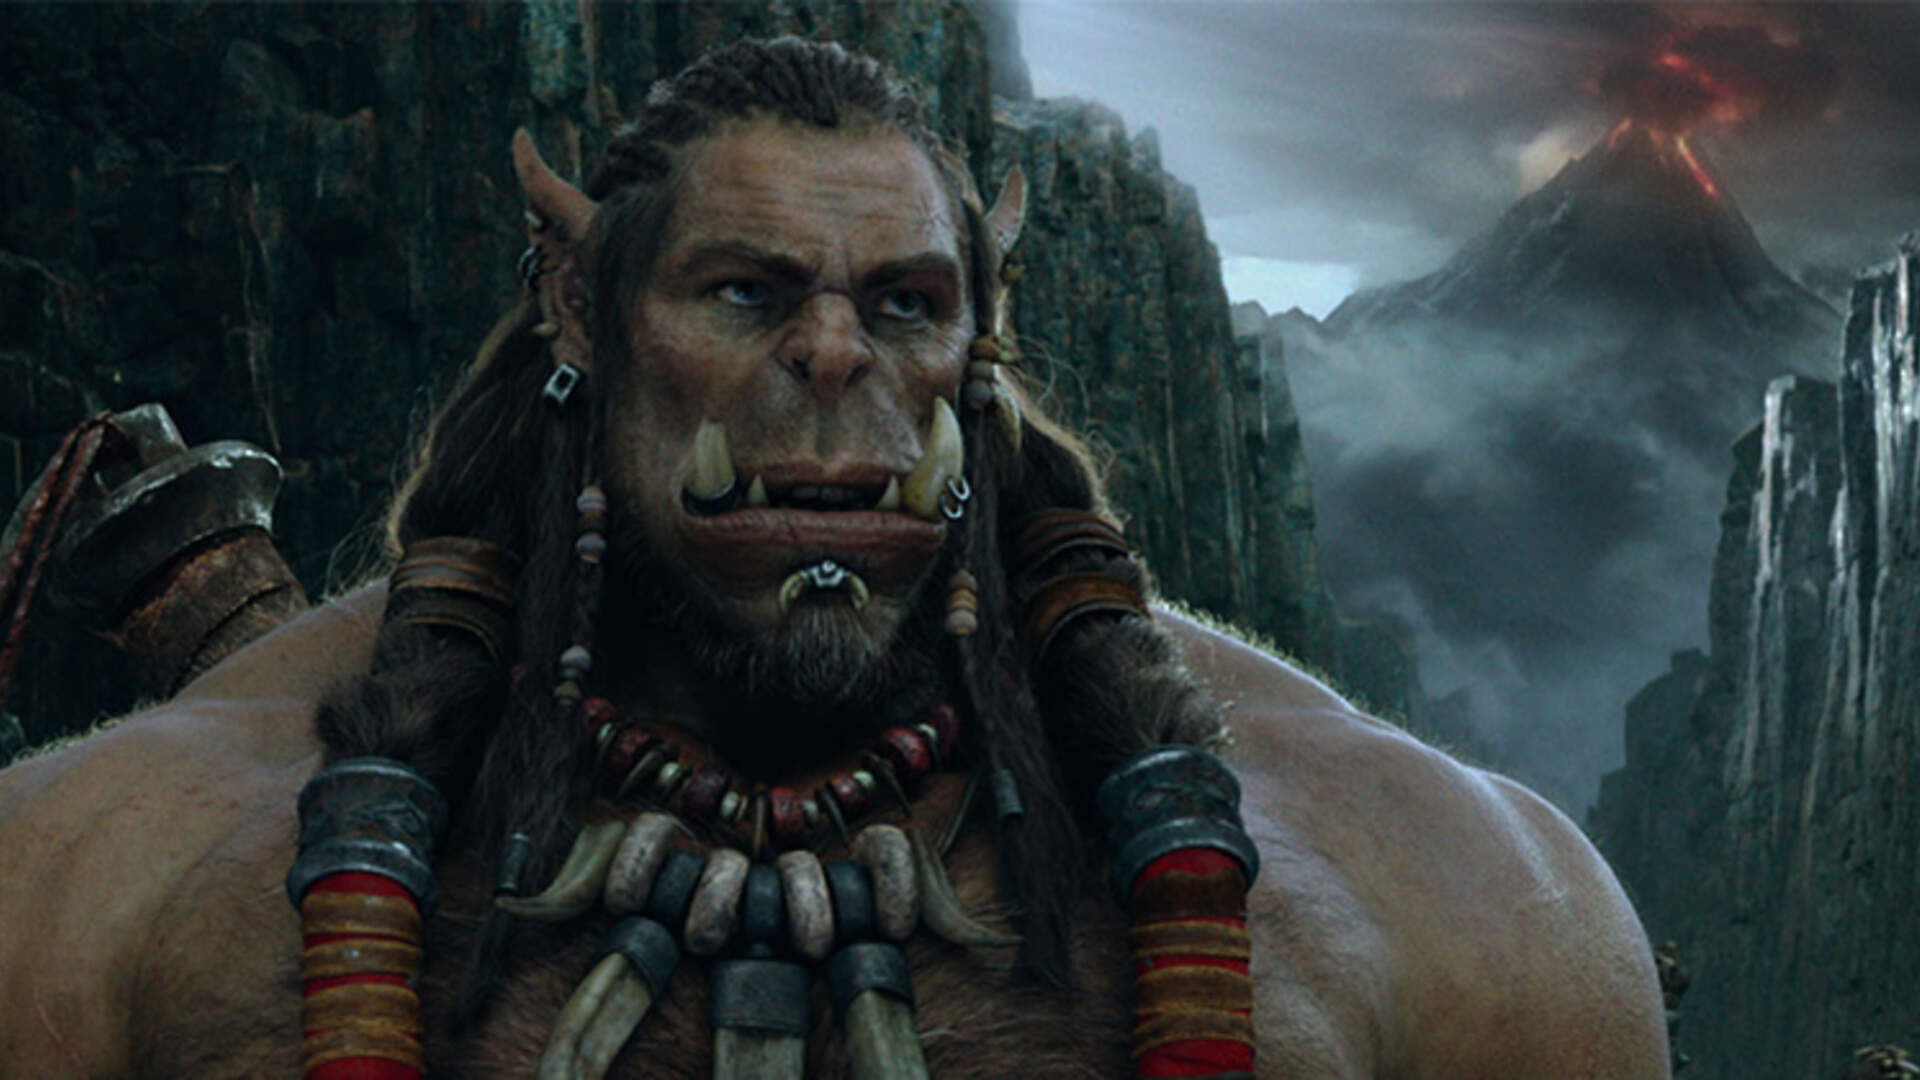 """Warcraft Director Calls Making of the Troubled Film """"A [Studio] Political Minefield"""""""